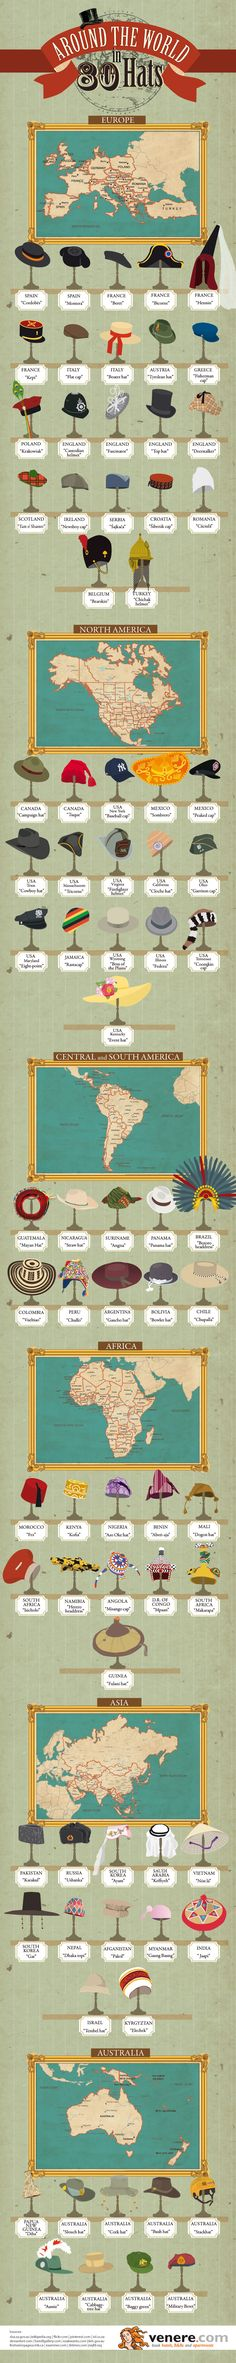 Around the World in 80 Hats | Venere.com #millinery #judithm #hats Great poster style view of hats and their origins.